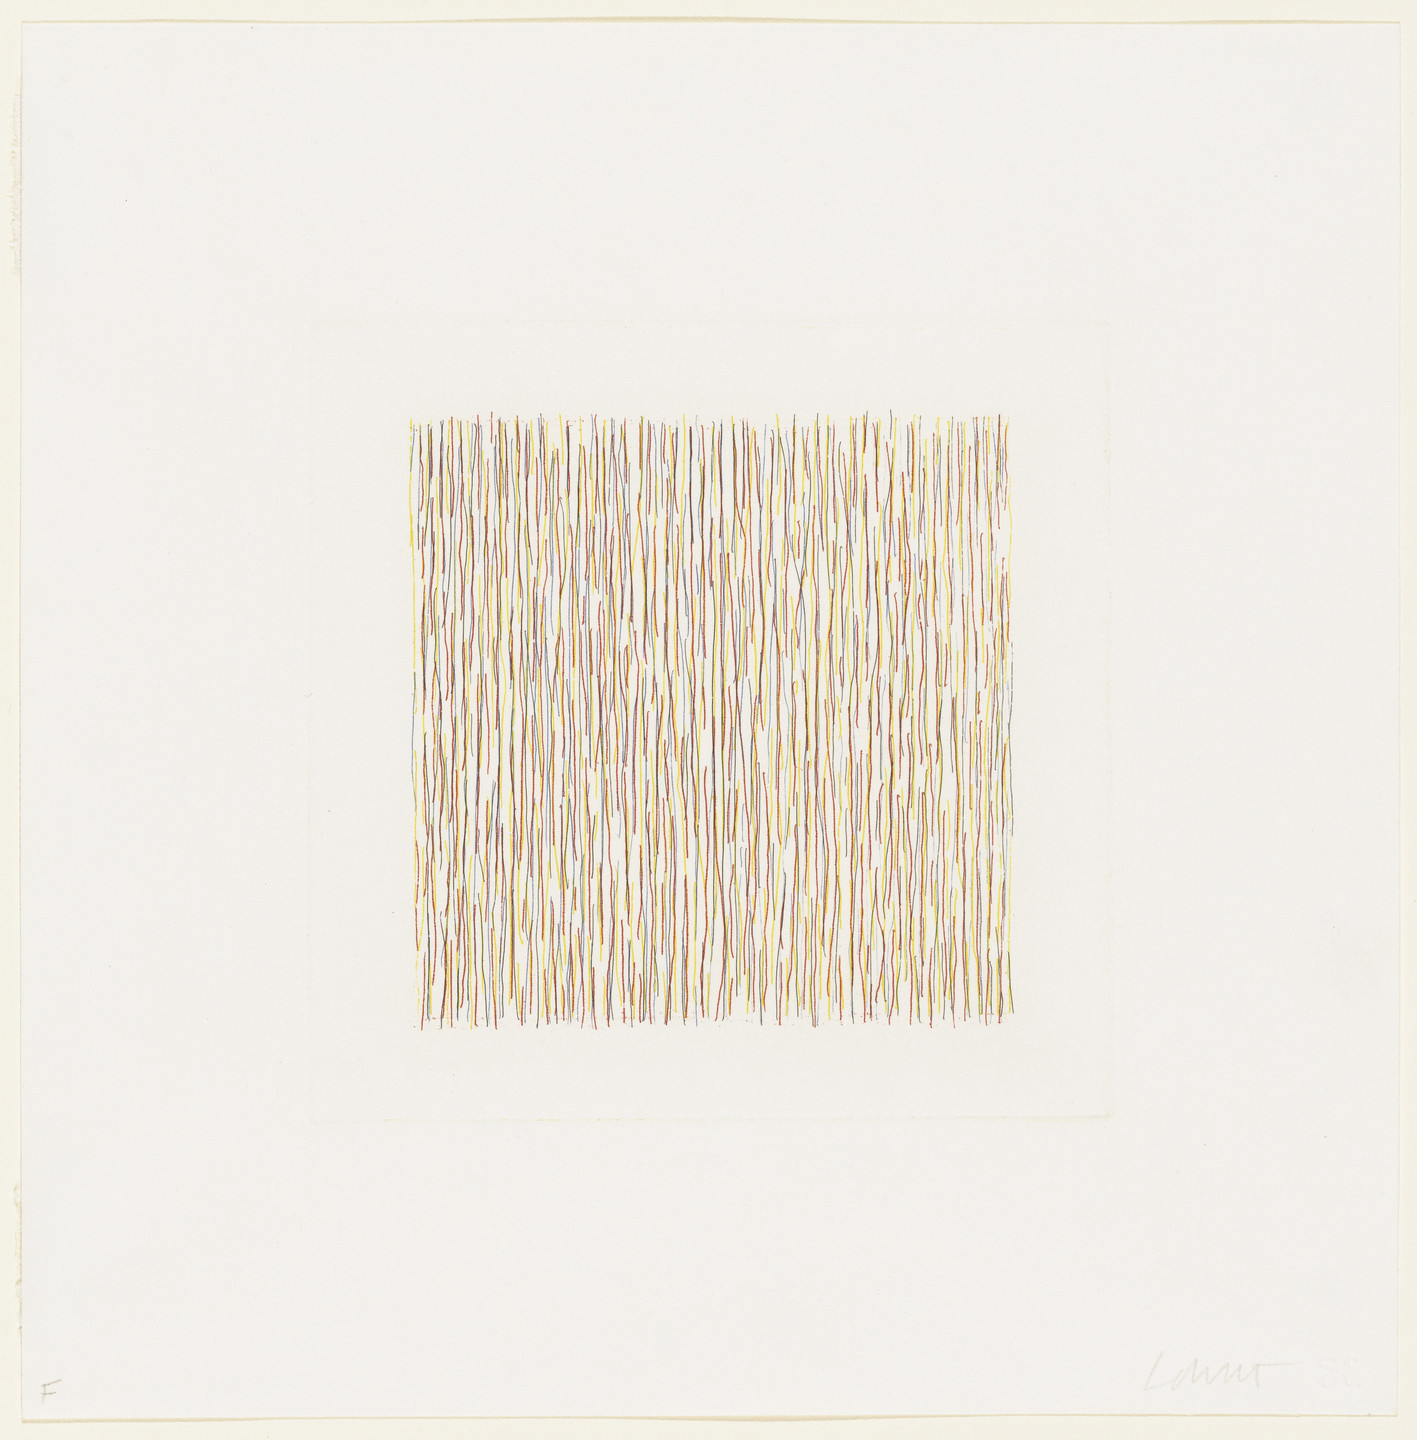 Sol LeWitt. Lines, Not Straight, Not Touching, Four Colours. 1971